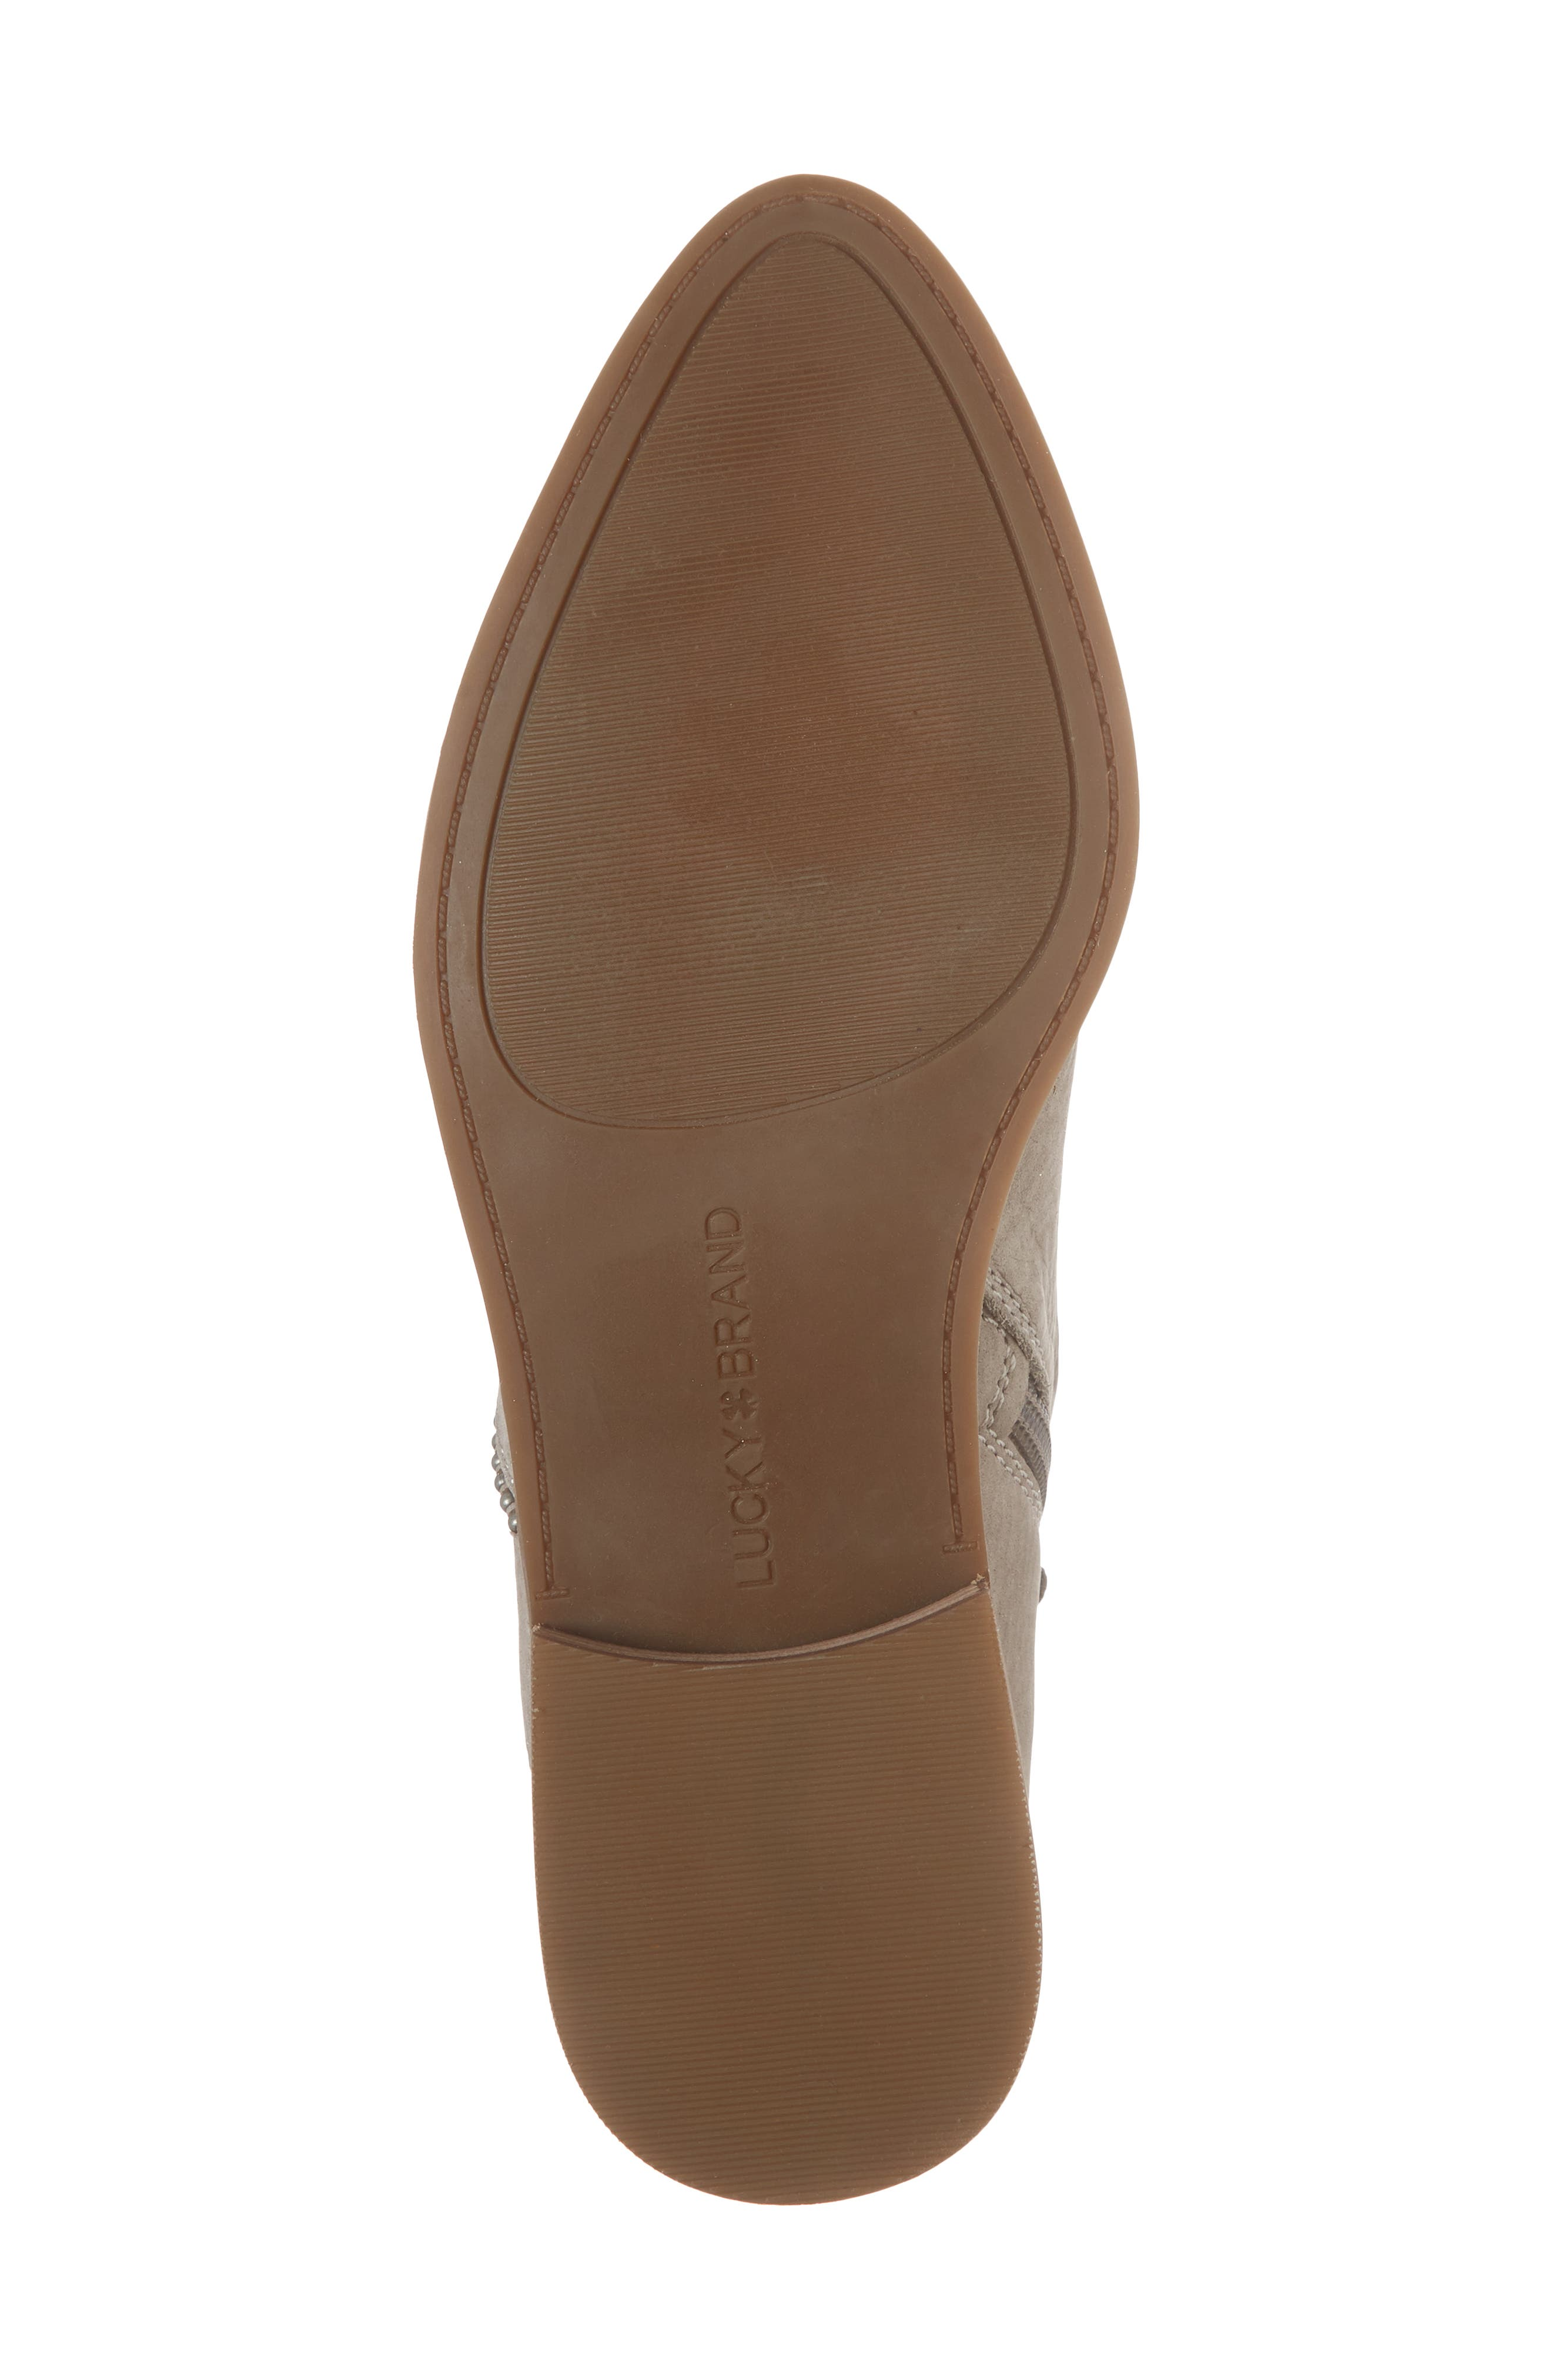 LUCKY BRAND,                             Perrma Bootie,                             Alternate thumbnail 6, color,                             060